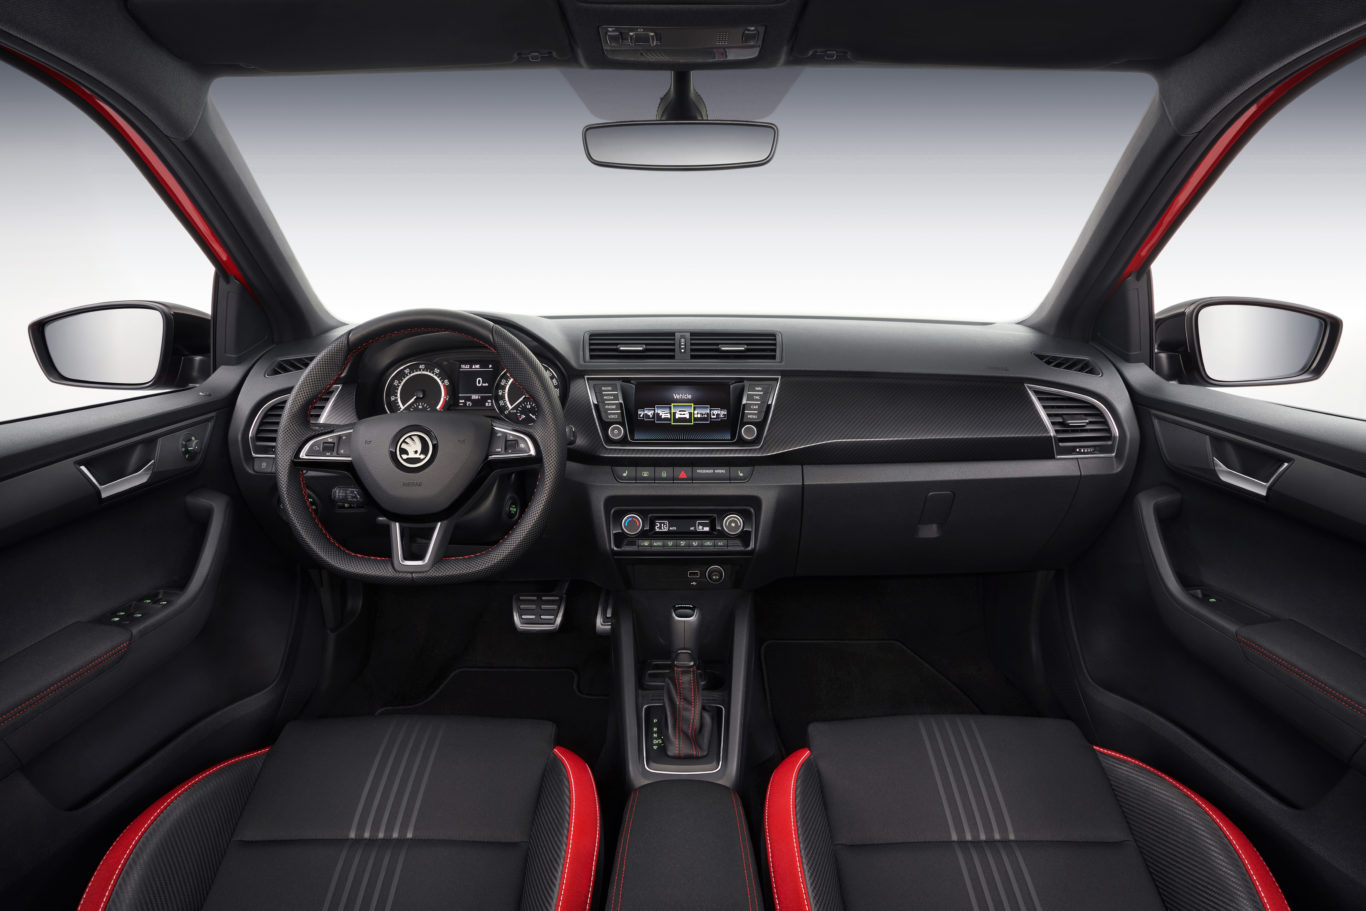 The interior of the car is solidly built